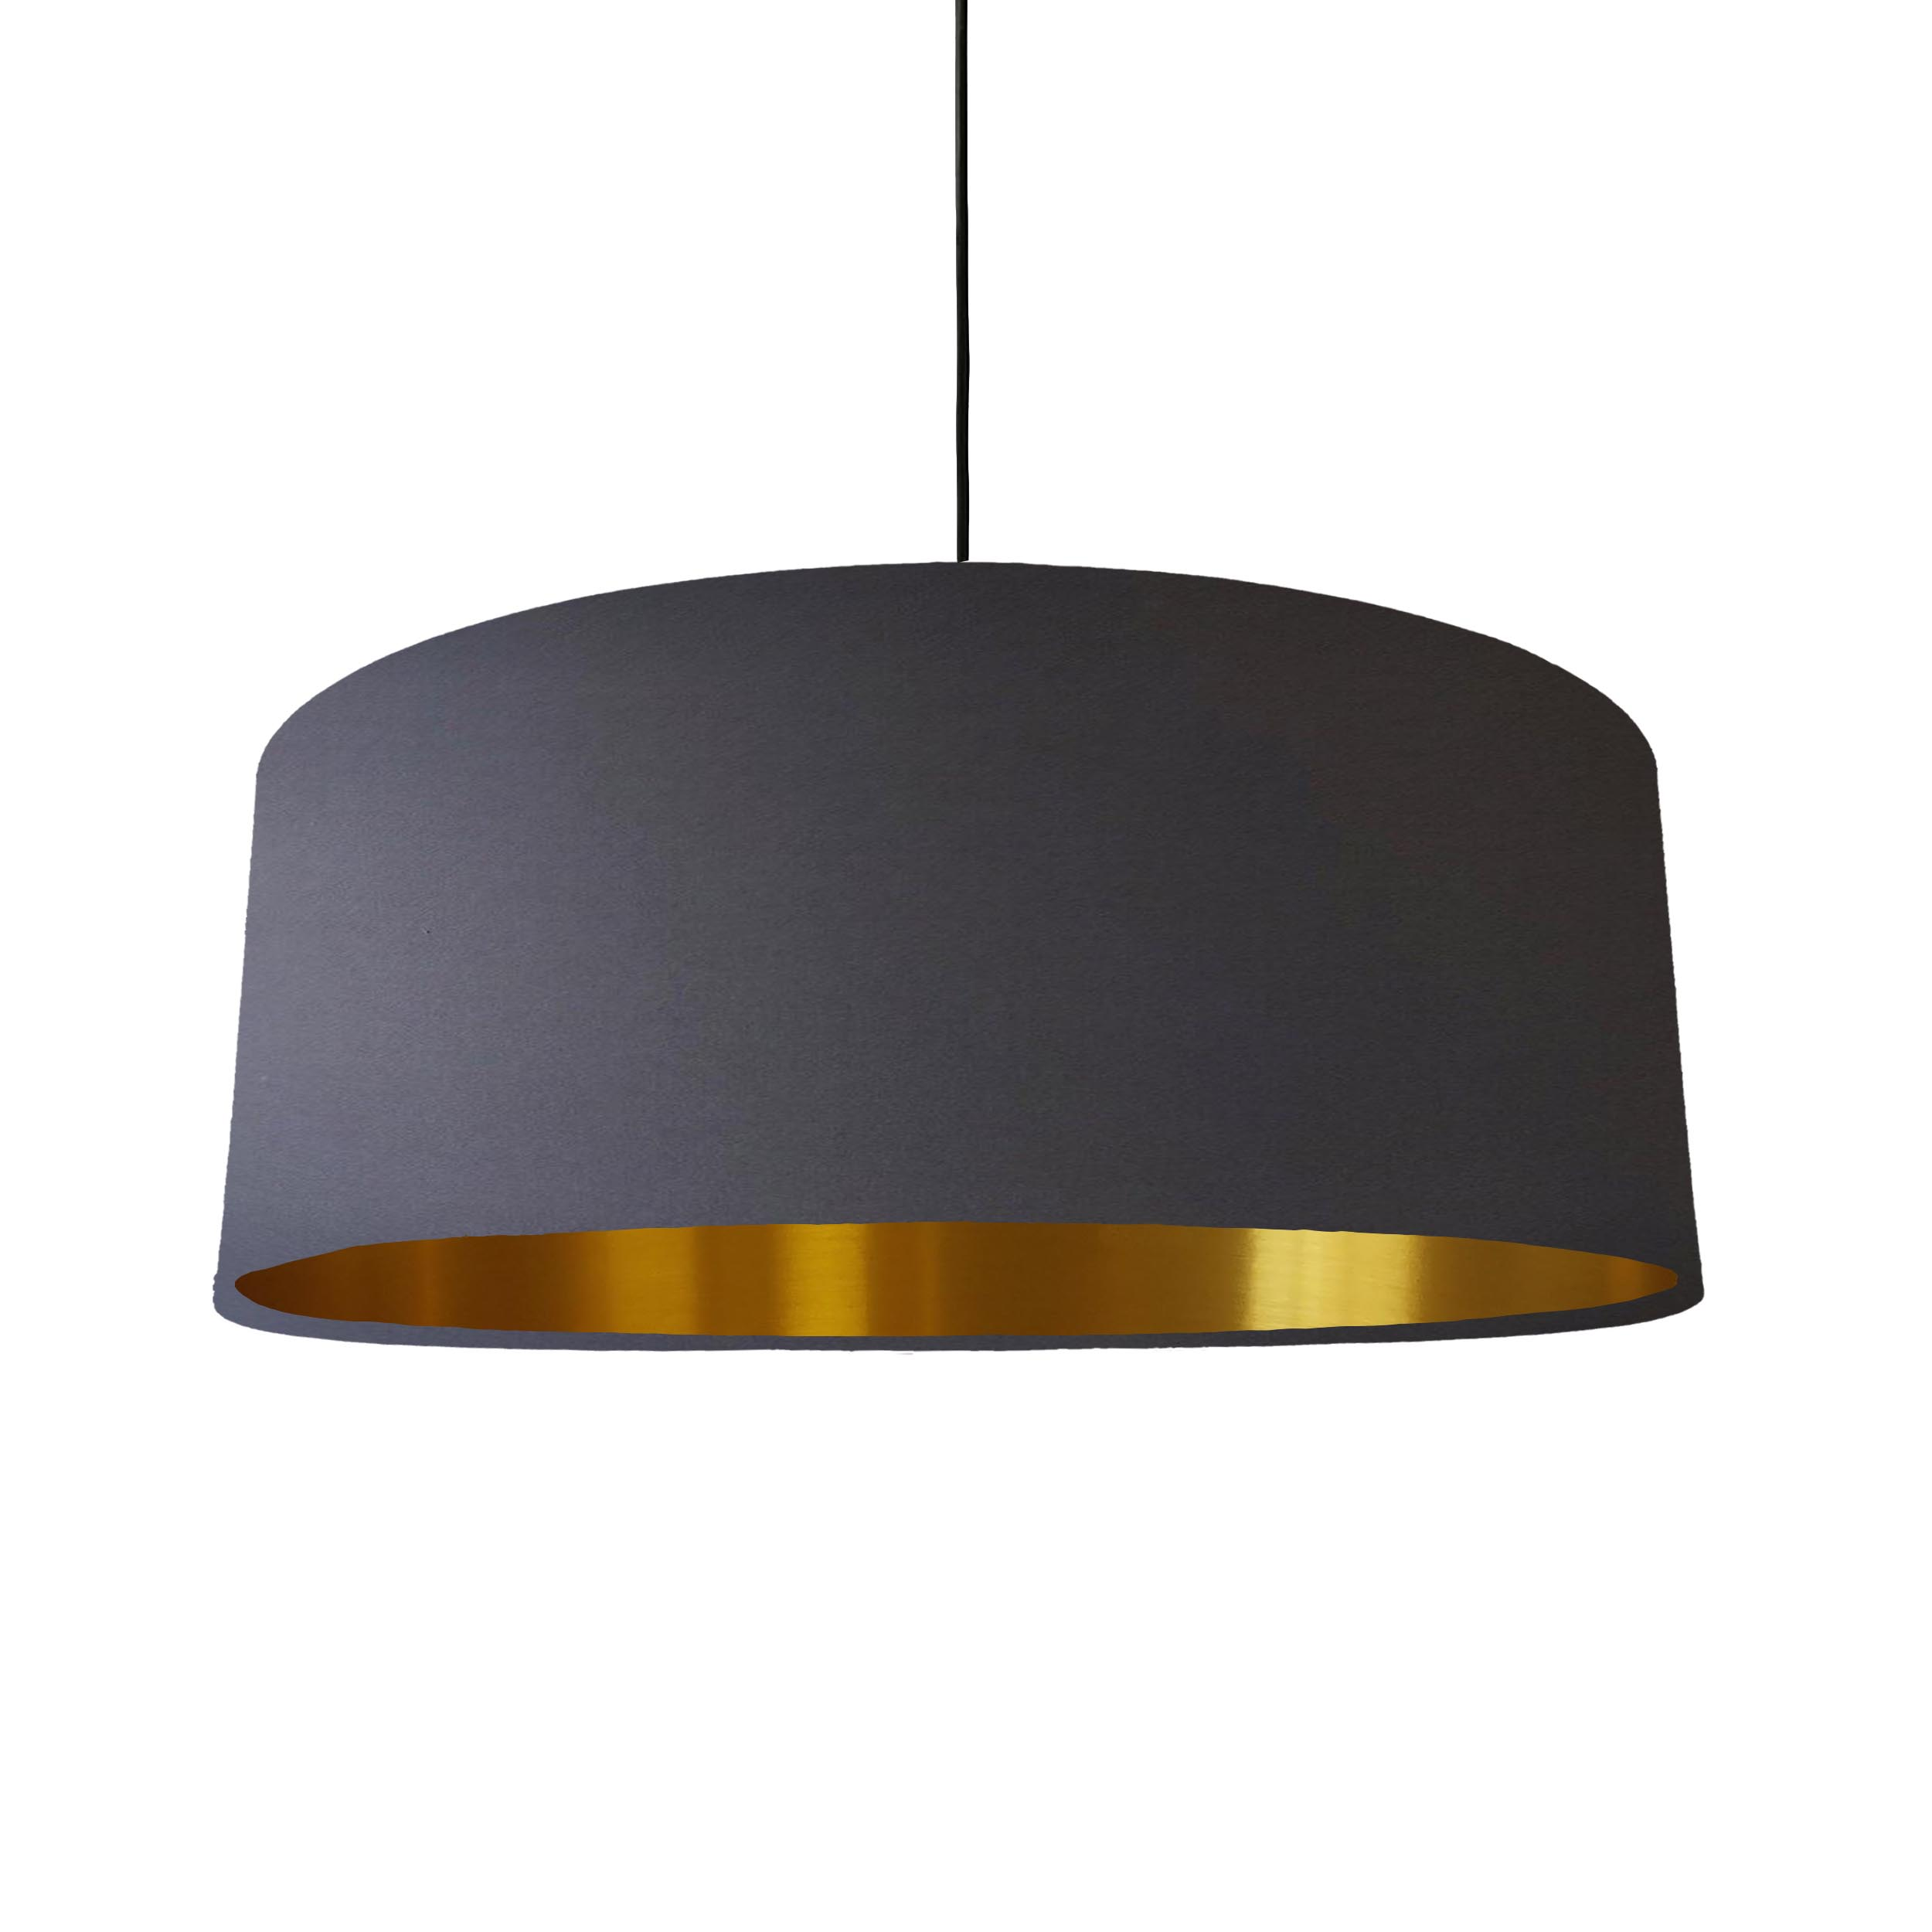 Extra Large Lampshade in Dark Grey Cotton and a Brushed Gold Lining